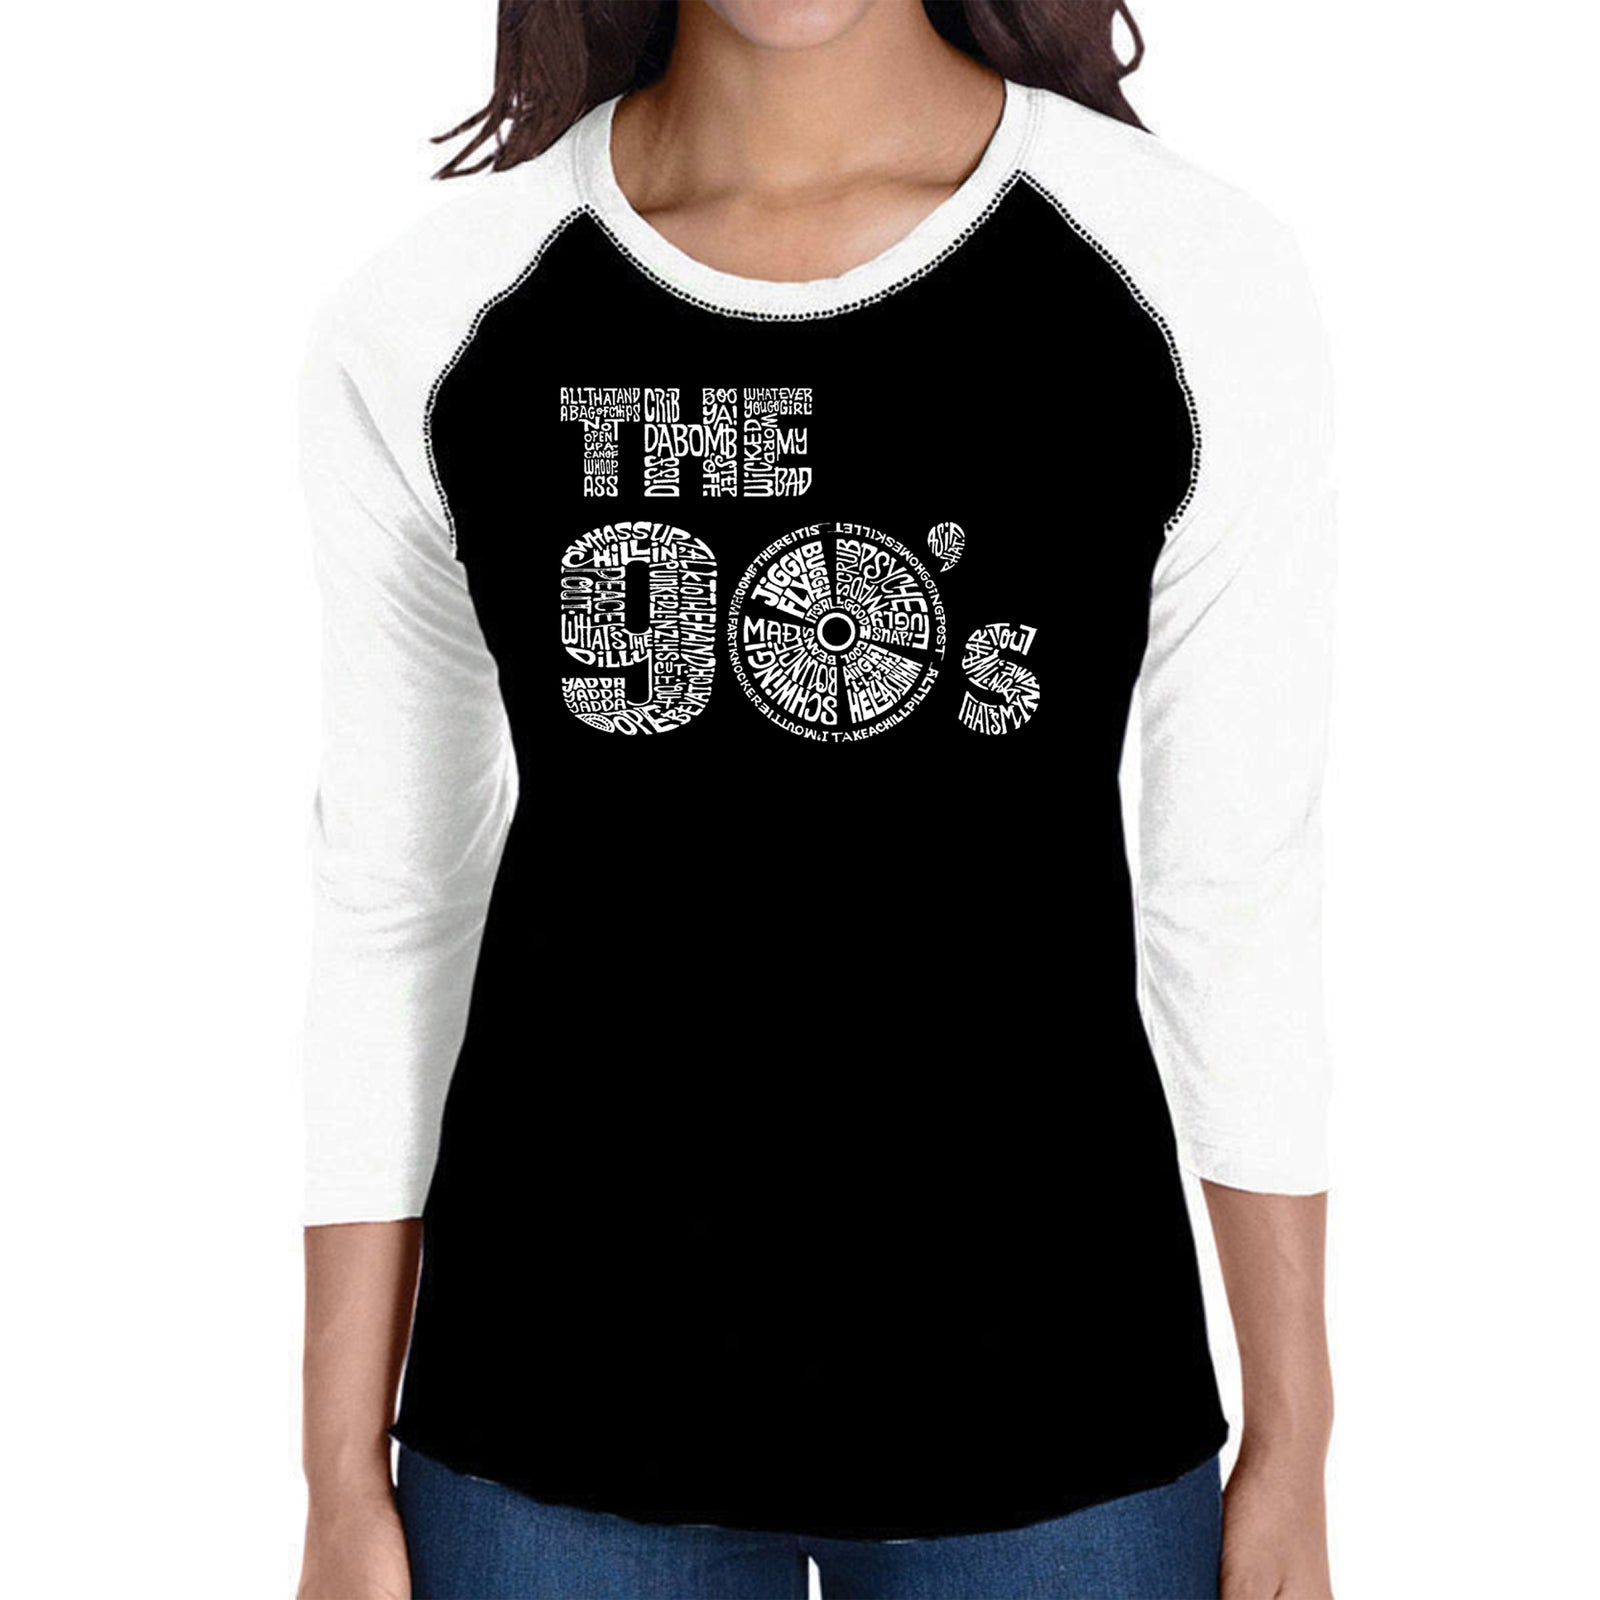 Women's Raglan Baseball Word Art T-shirt - 90S